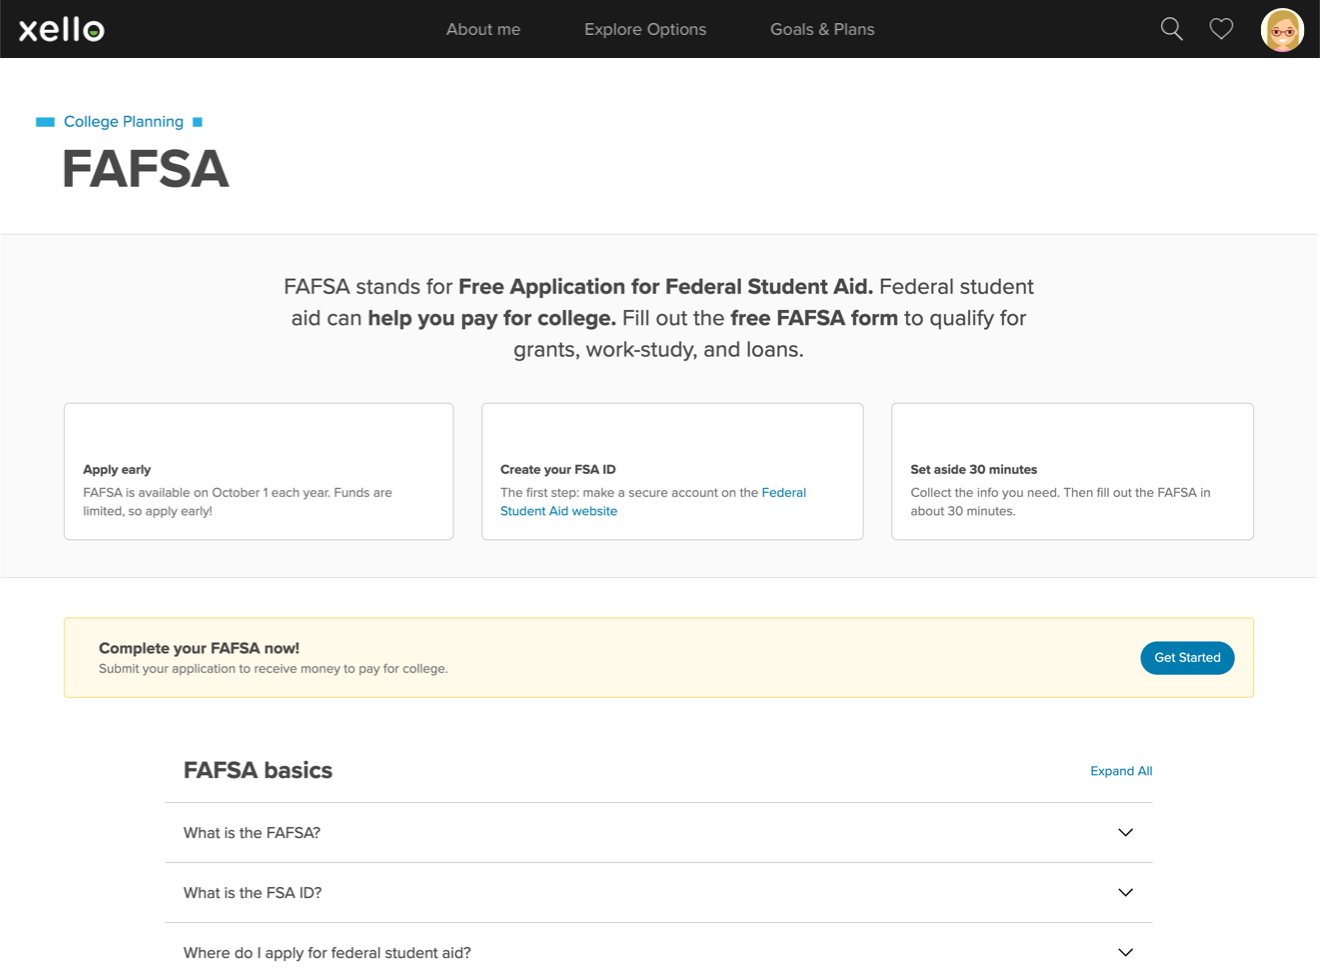 FAFSA topic page